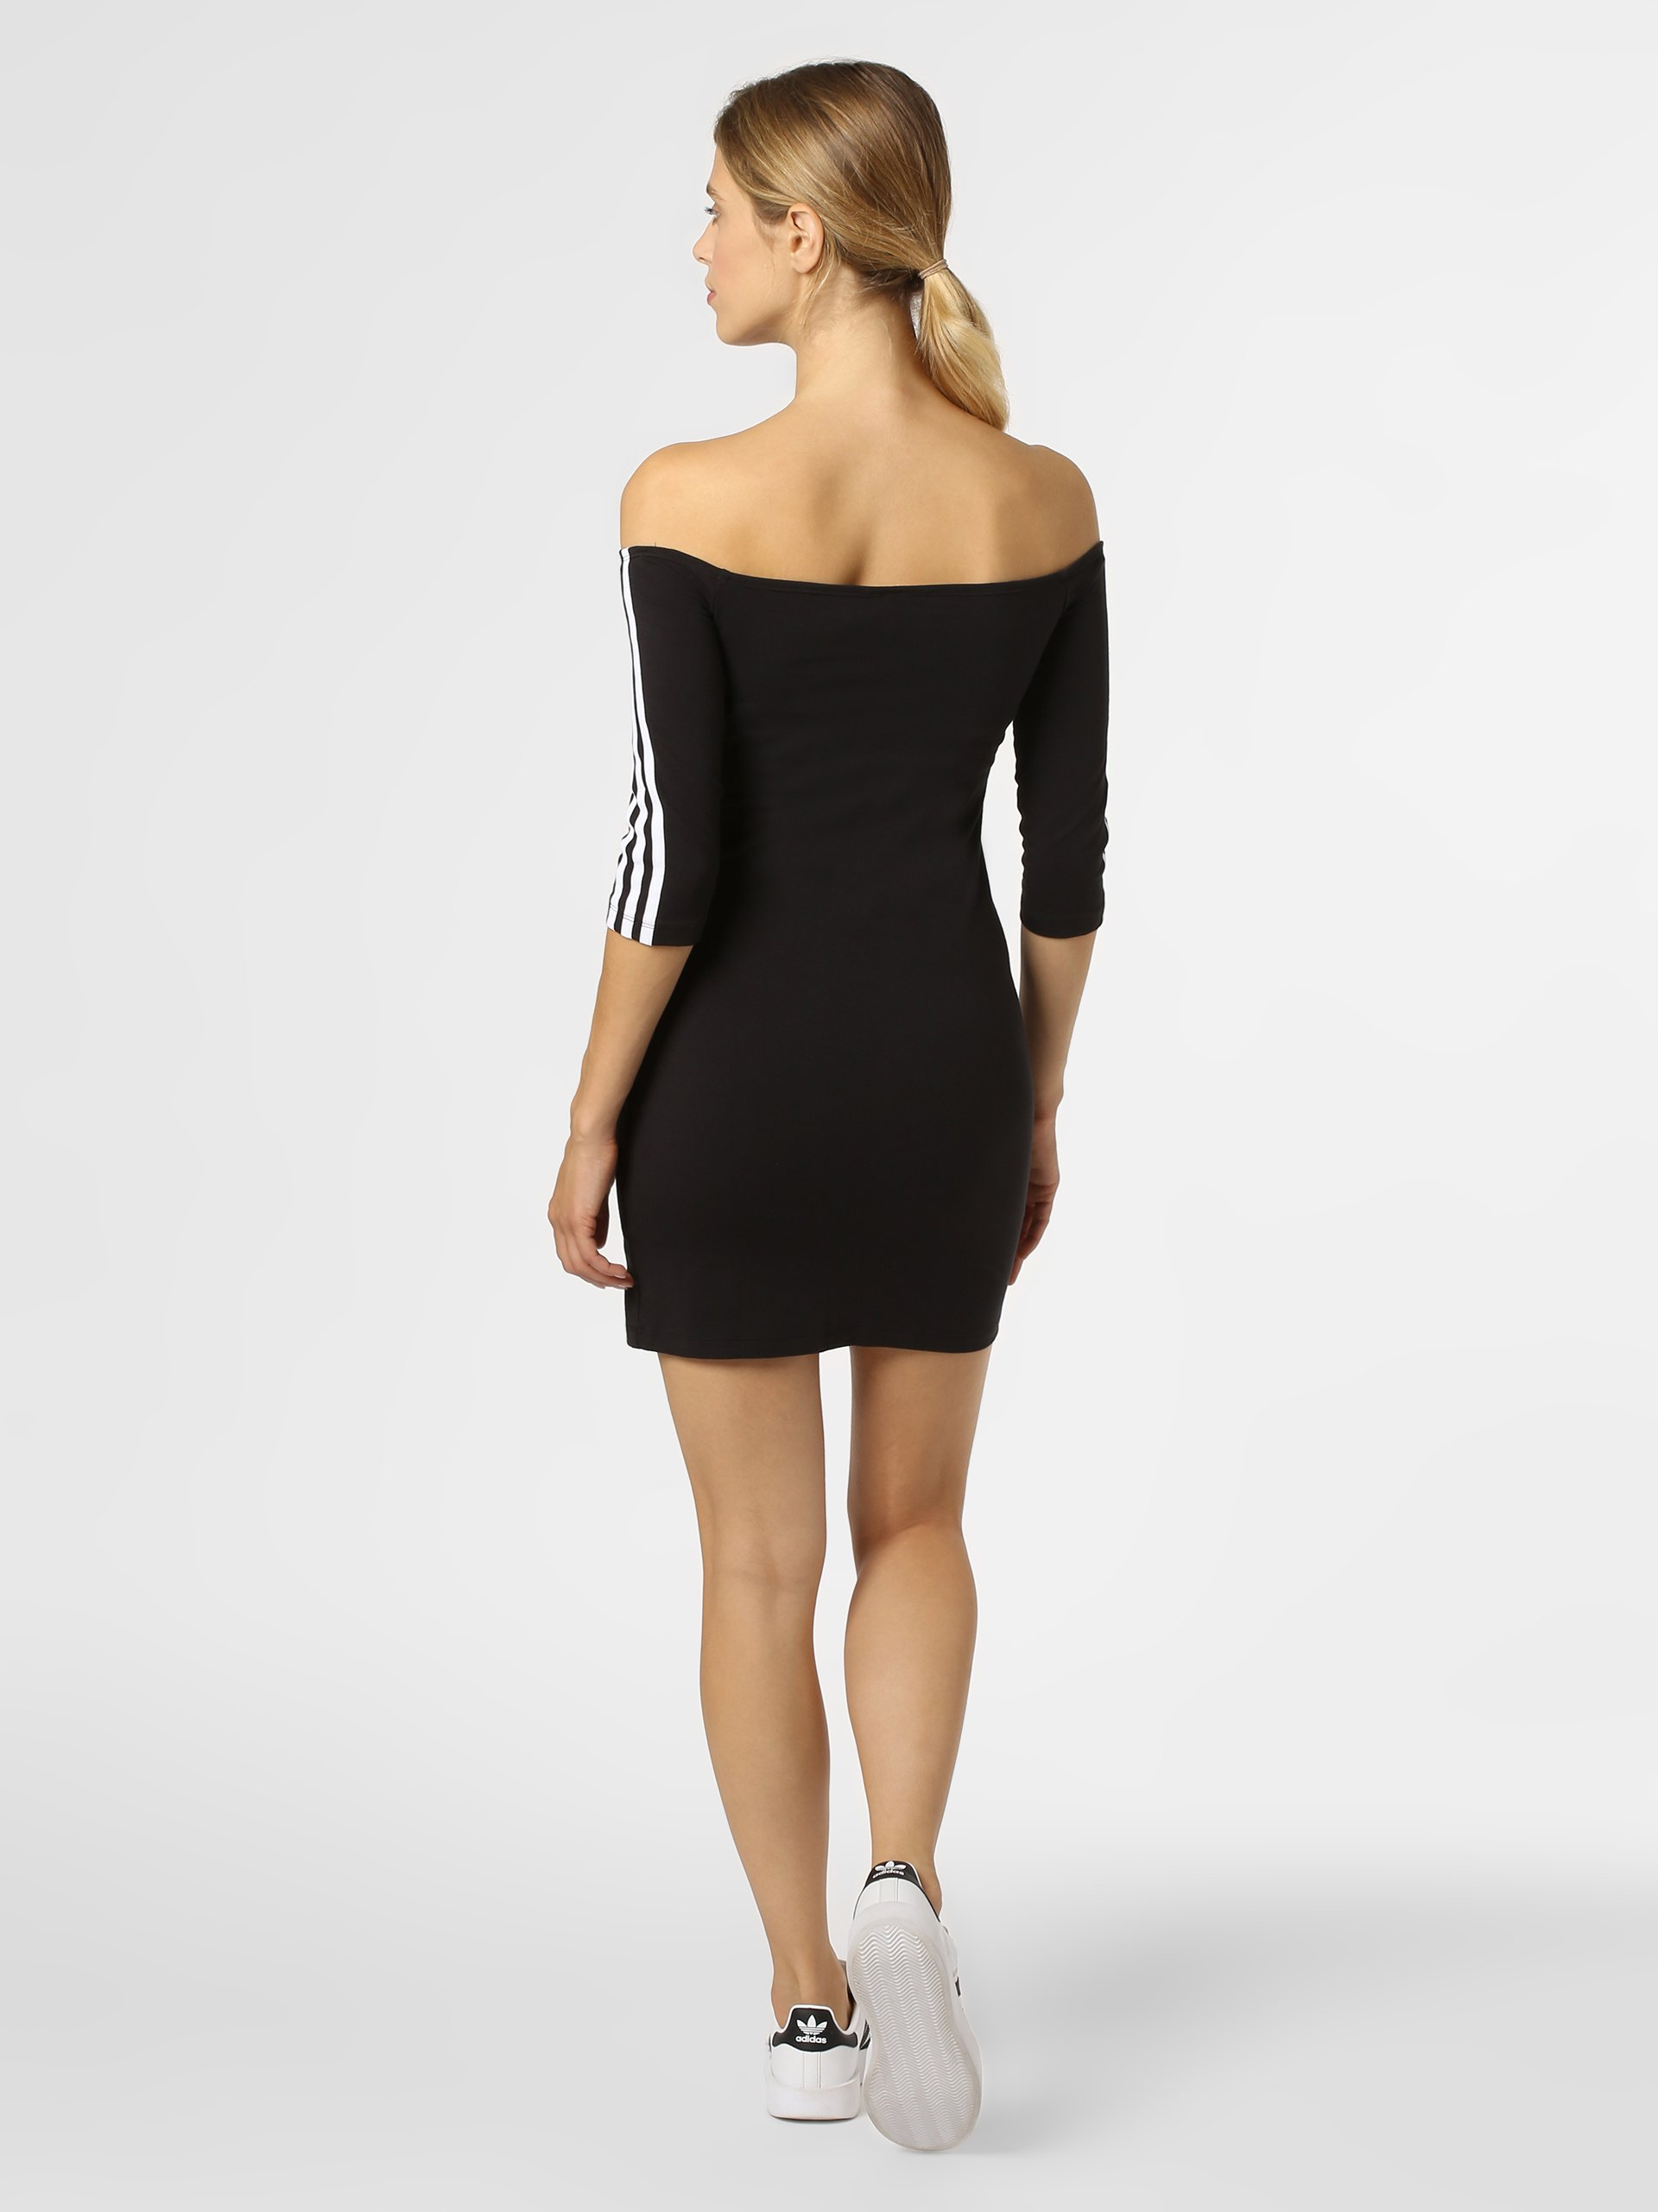 adidas Originals Damen Kleid